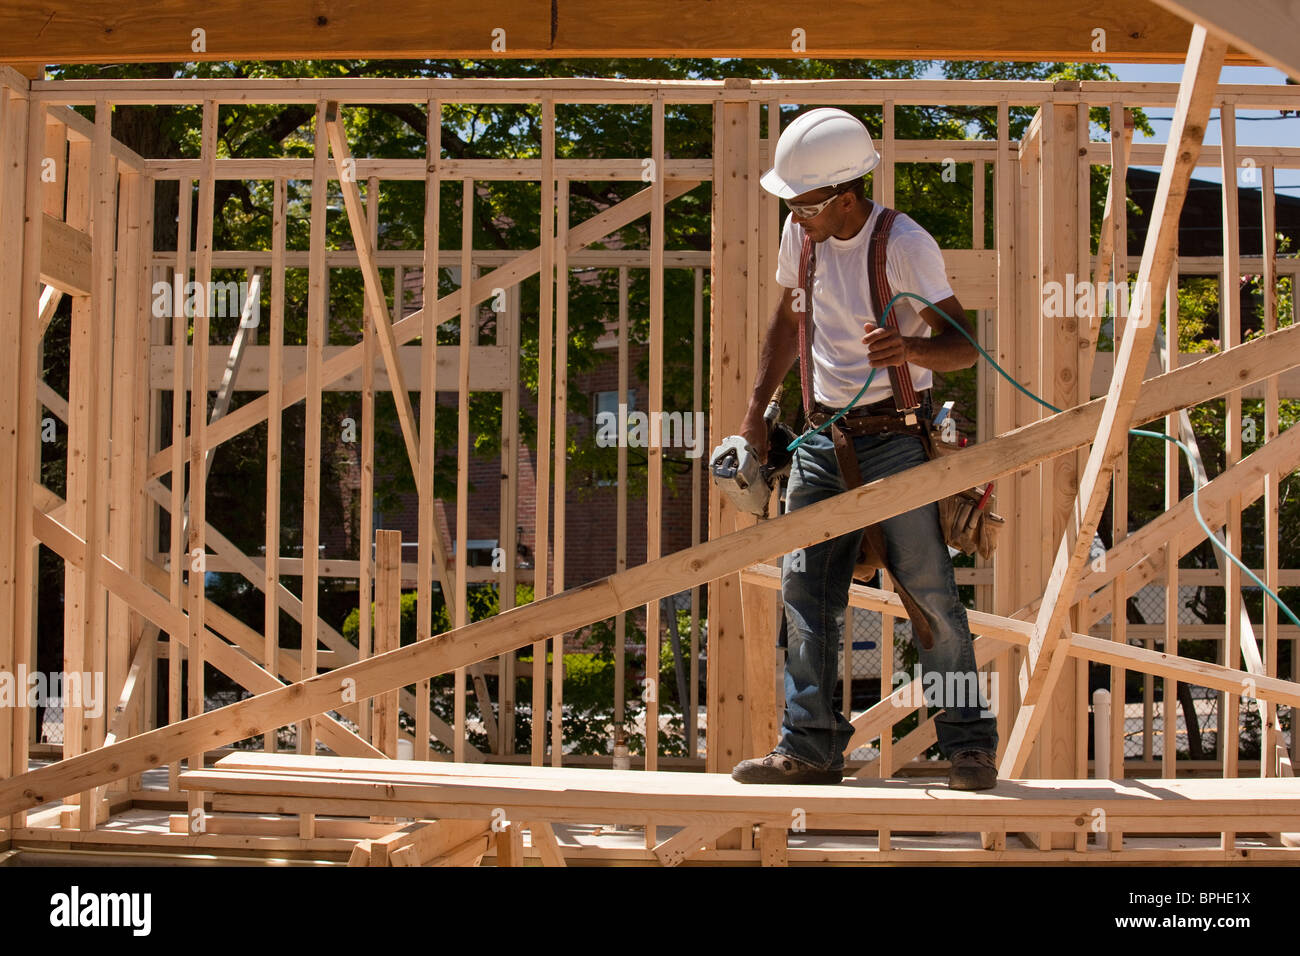 Carpenter standing at a construction site holding a nail gun - Stock Image